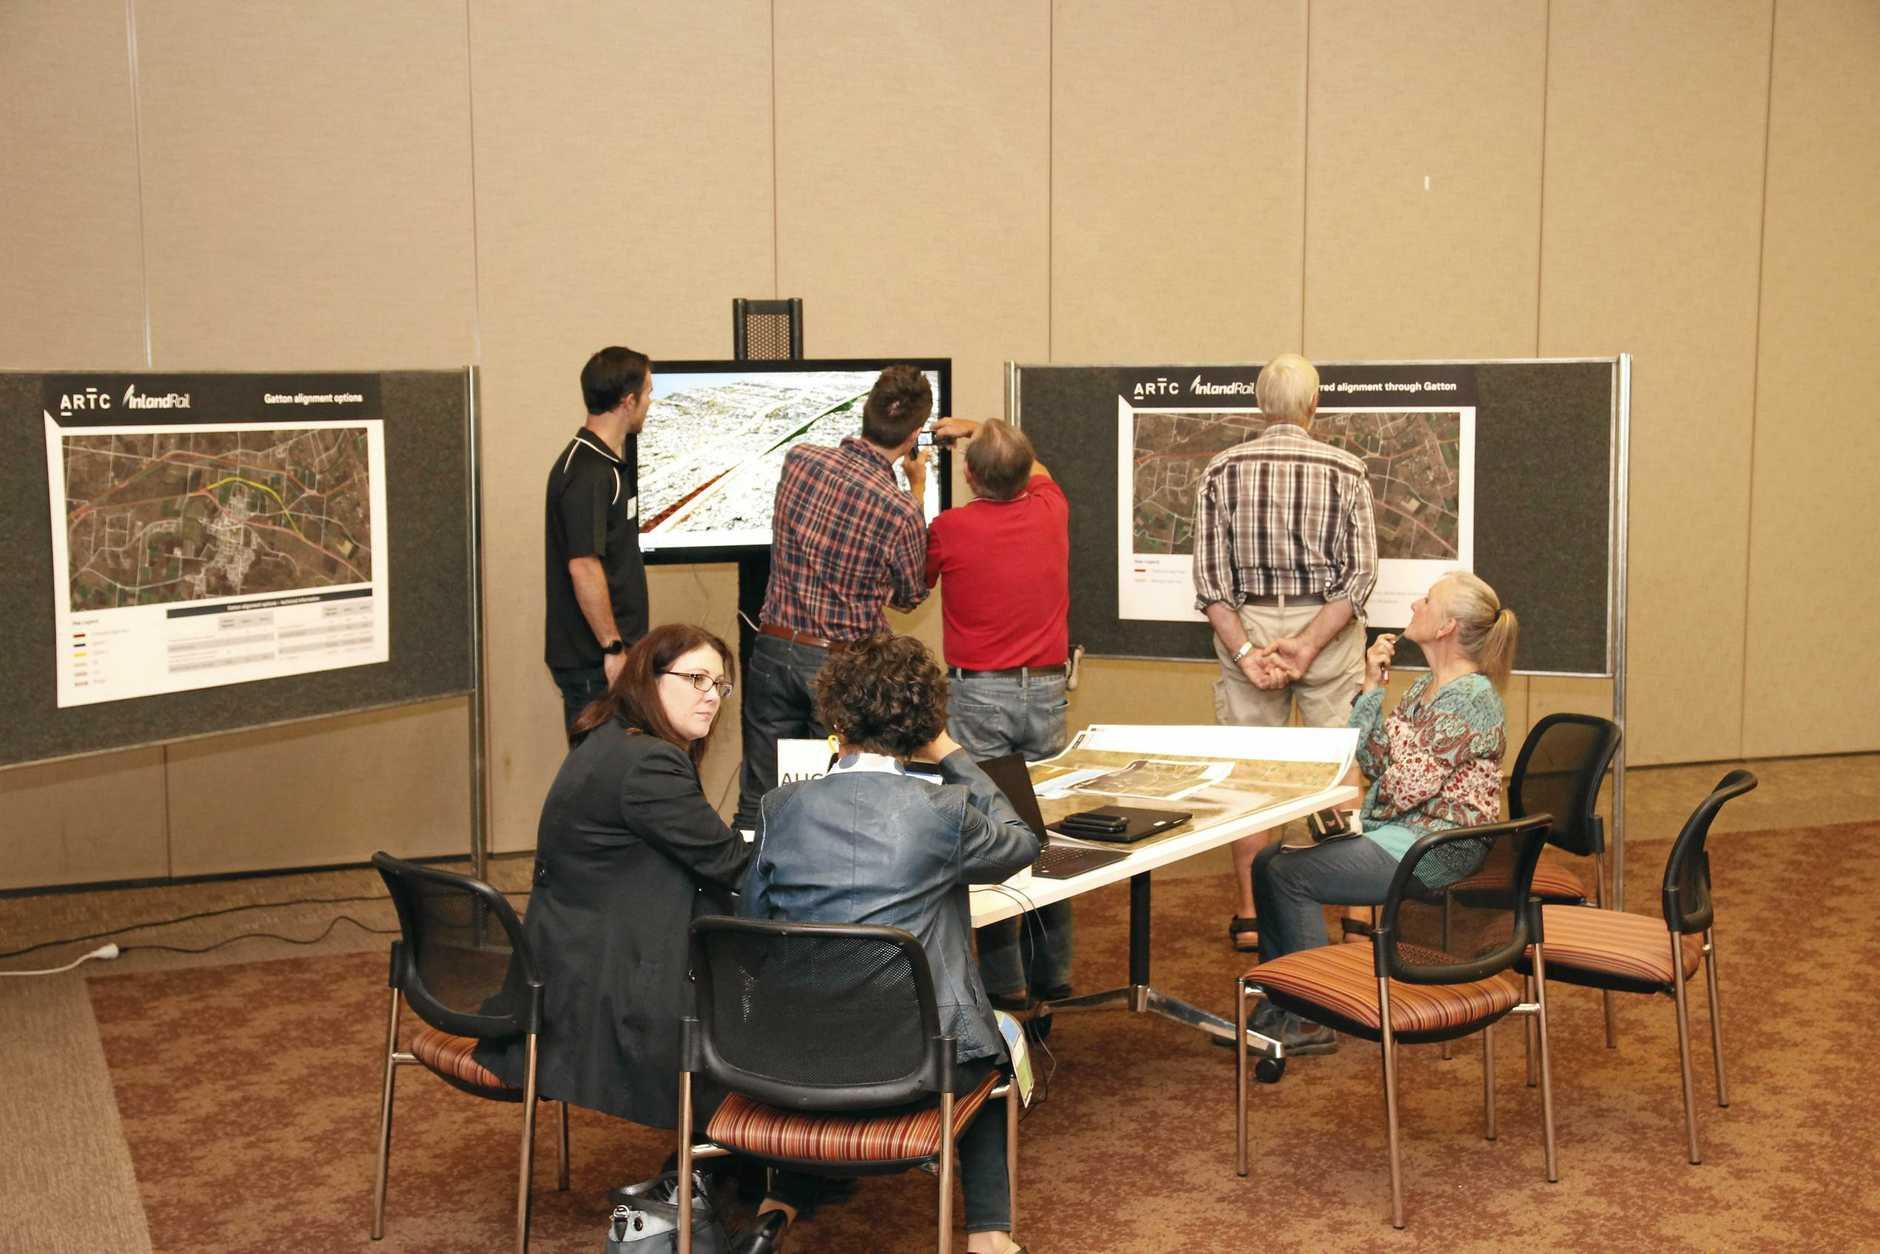 ON TRACK: ARTC held an information session on the Inland Rail project on Monday evening to answer the community's questions.